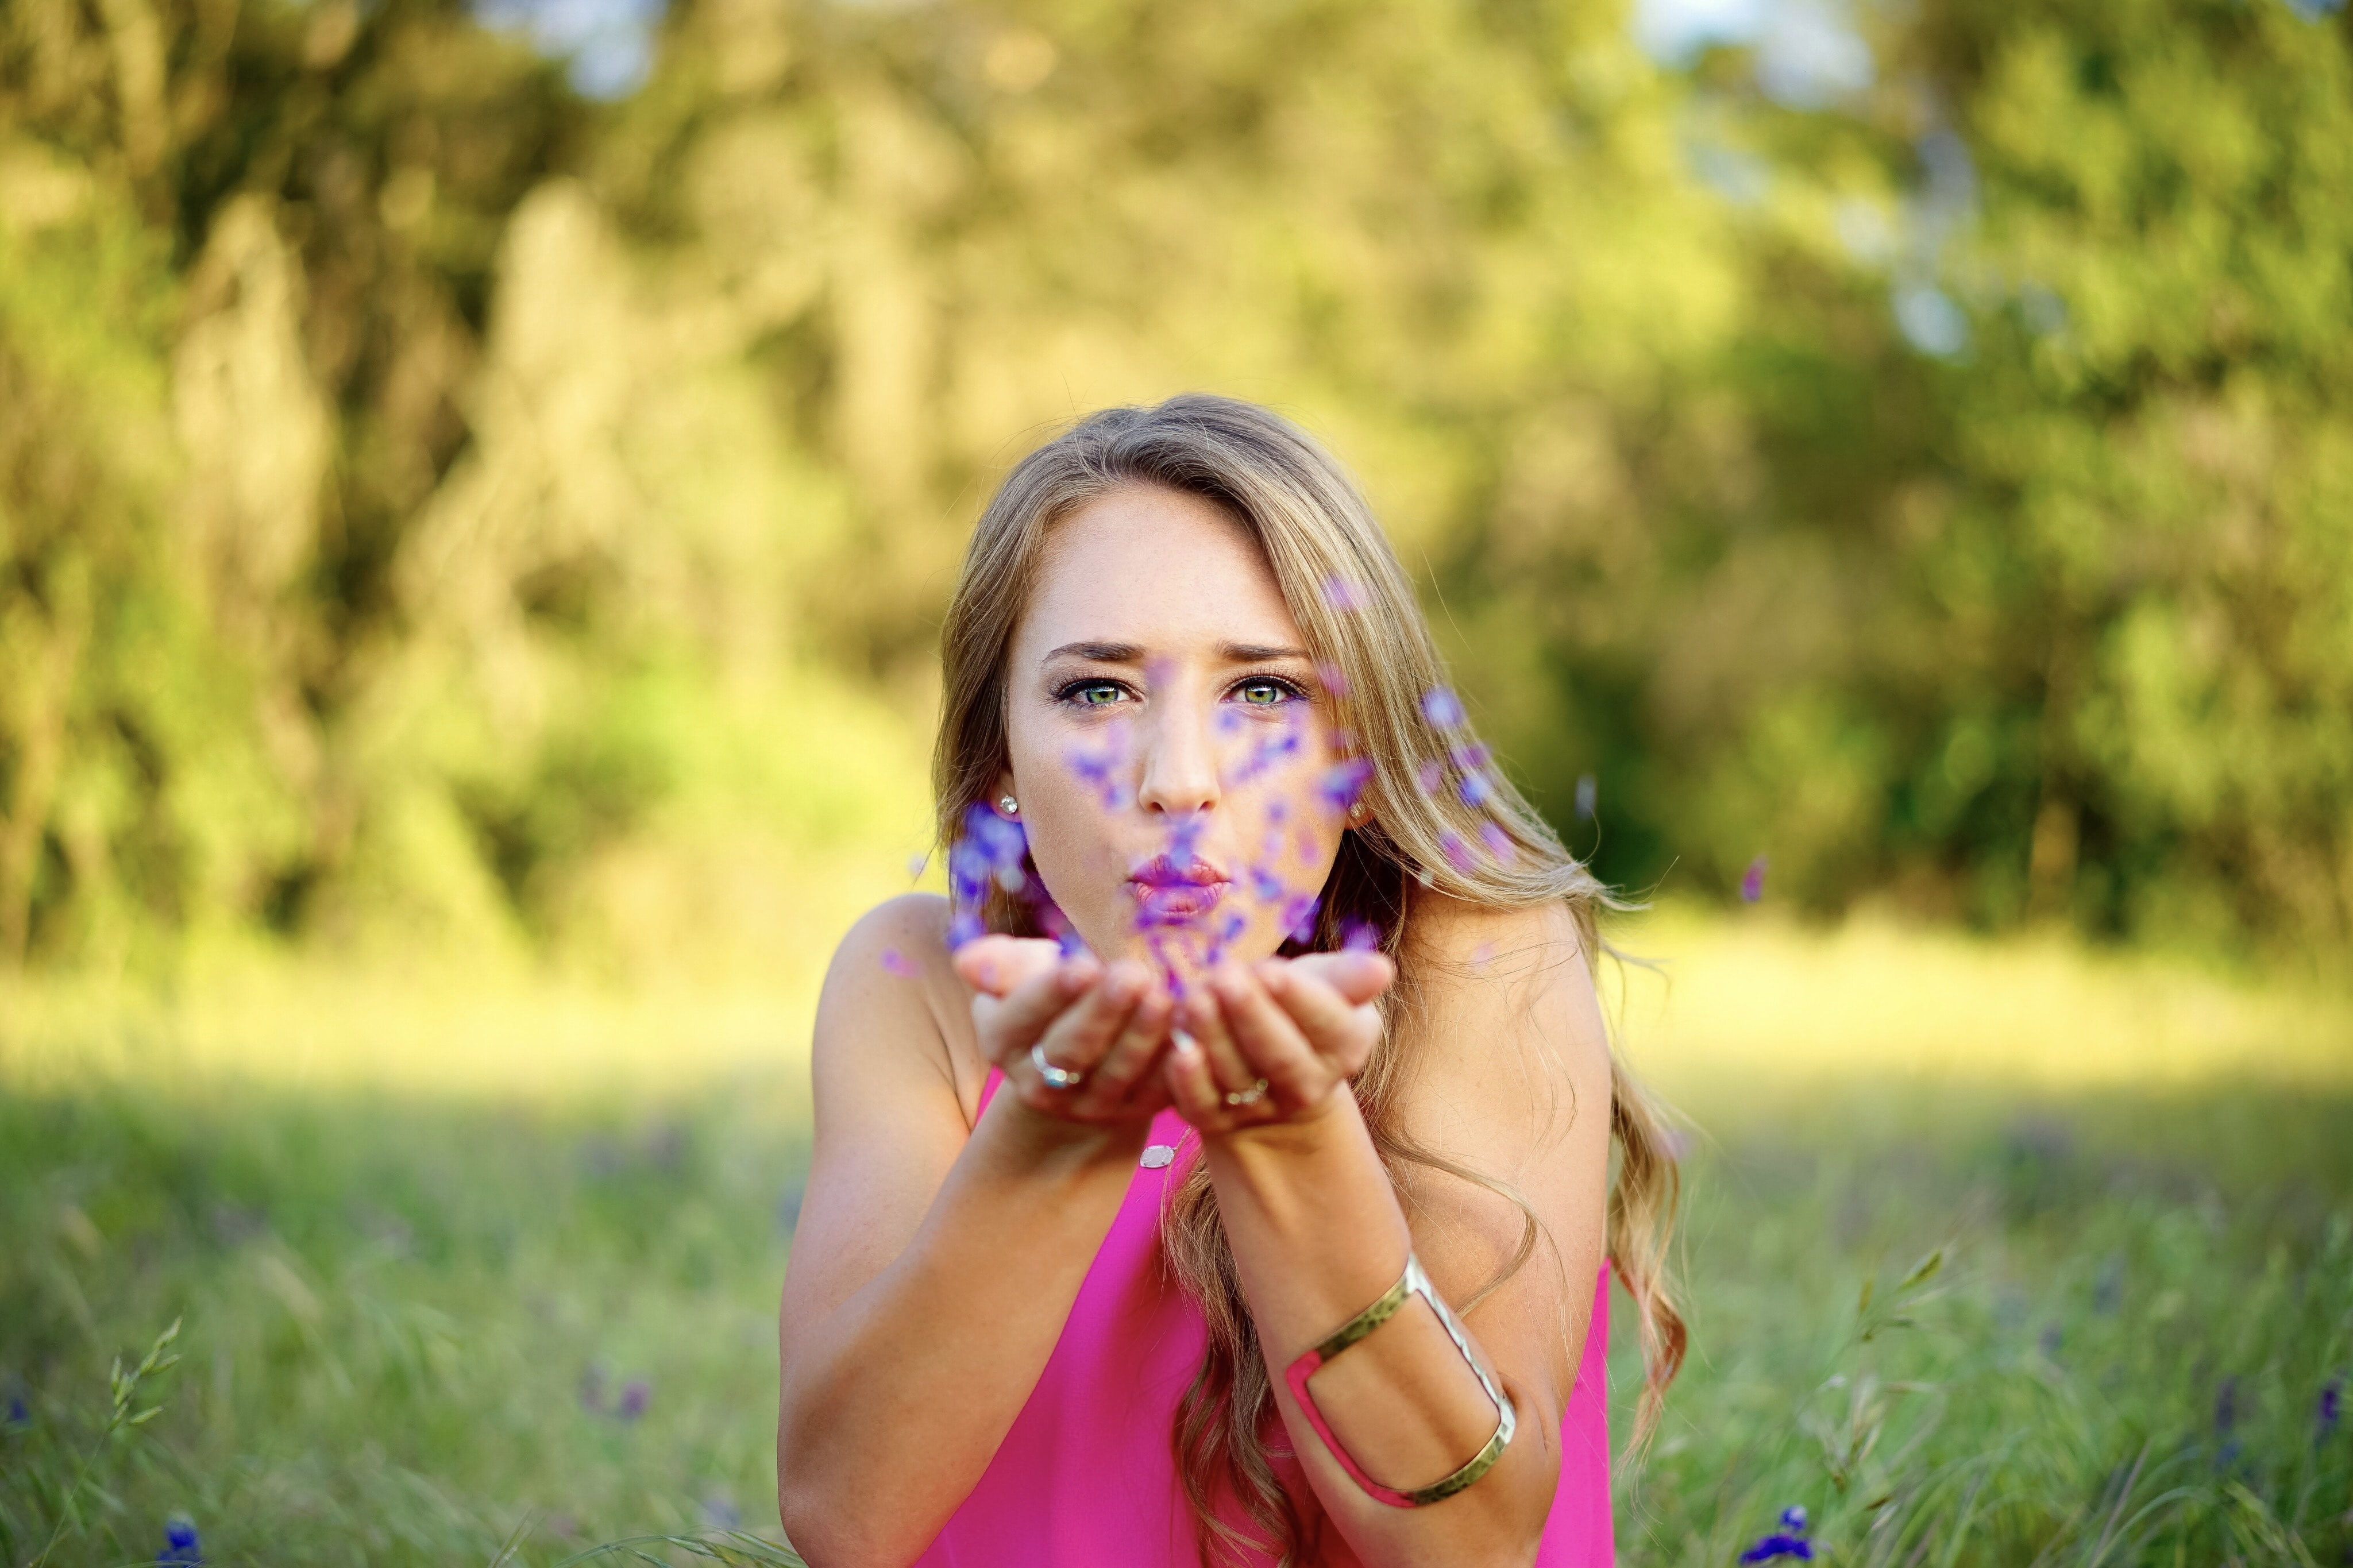 A young woman blowing at small flower petals in her hands